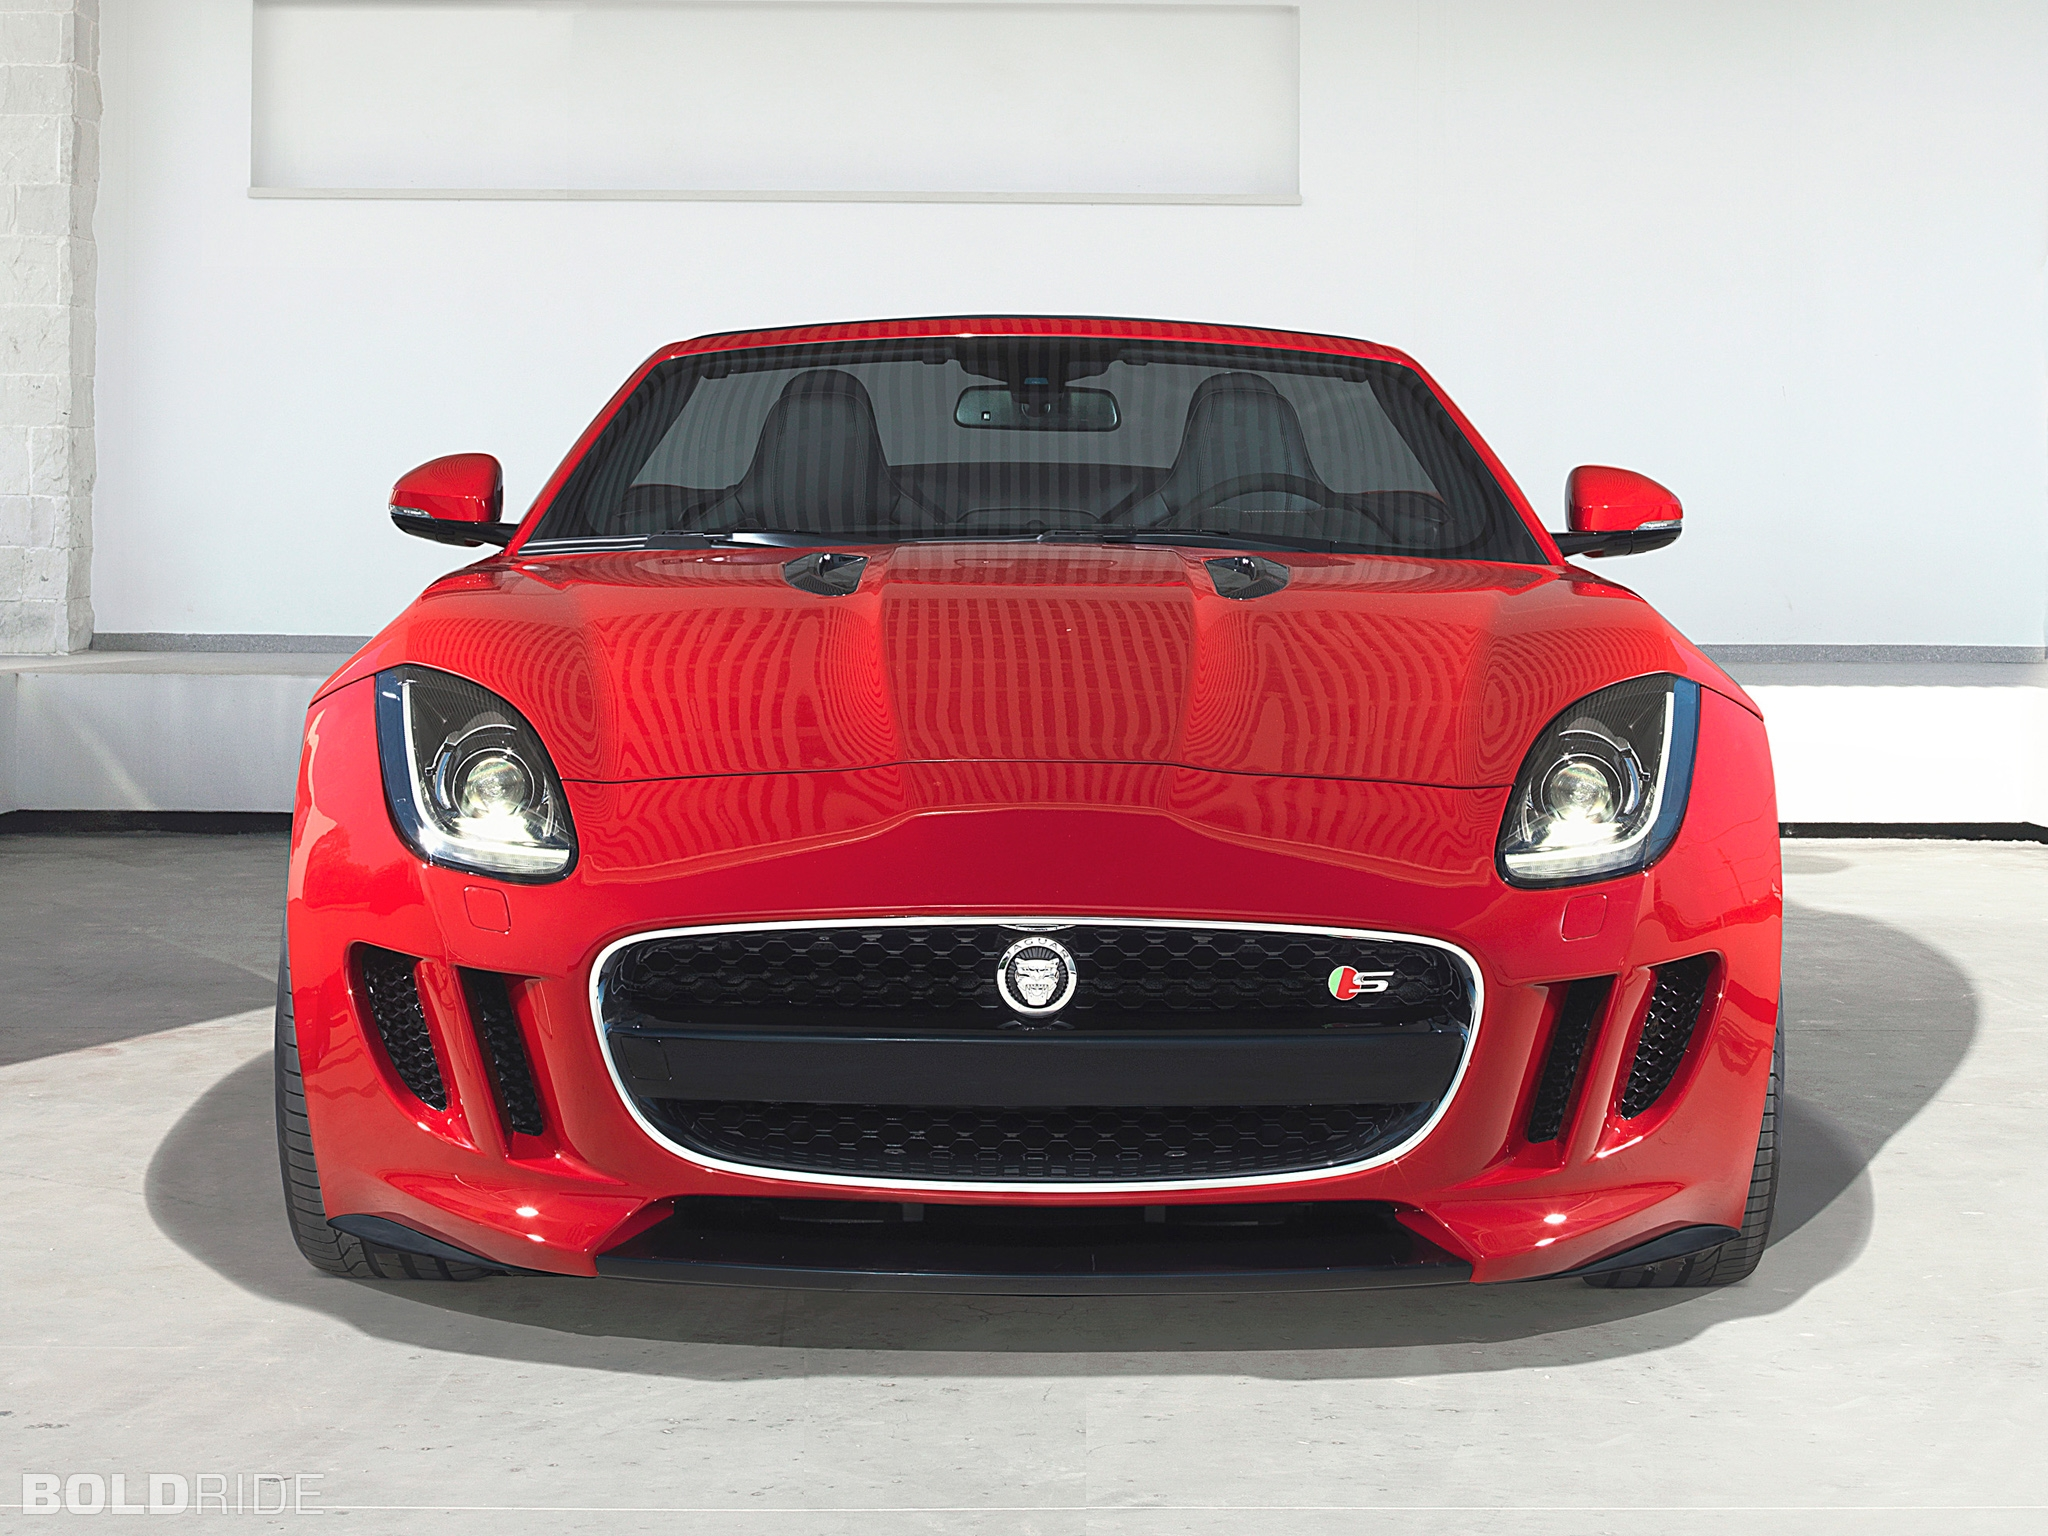 2013 Jaguar F-Type 1920 x 1080